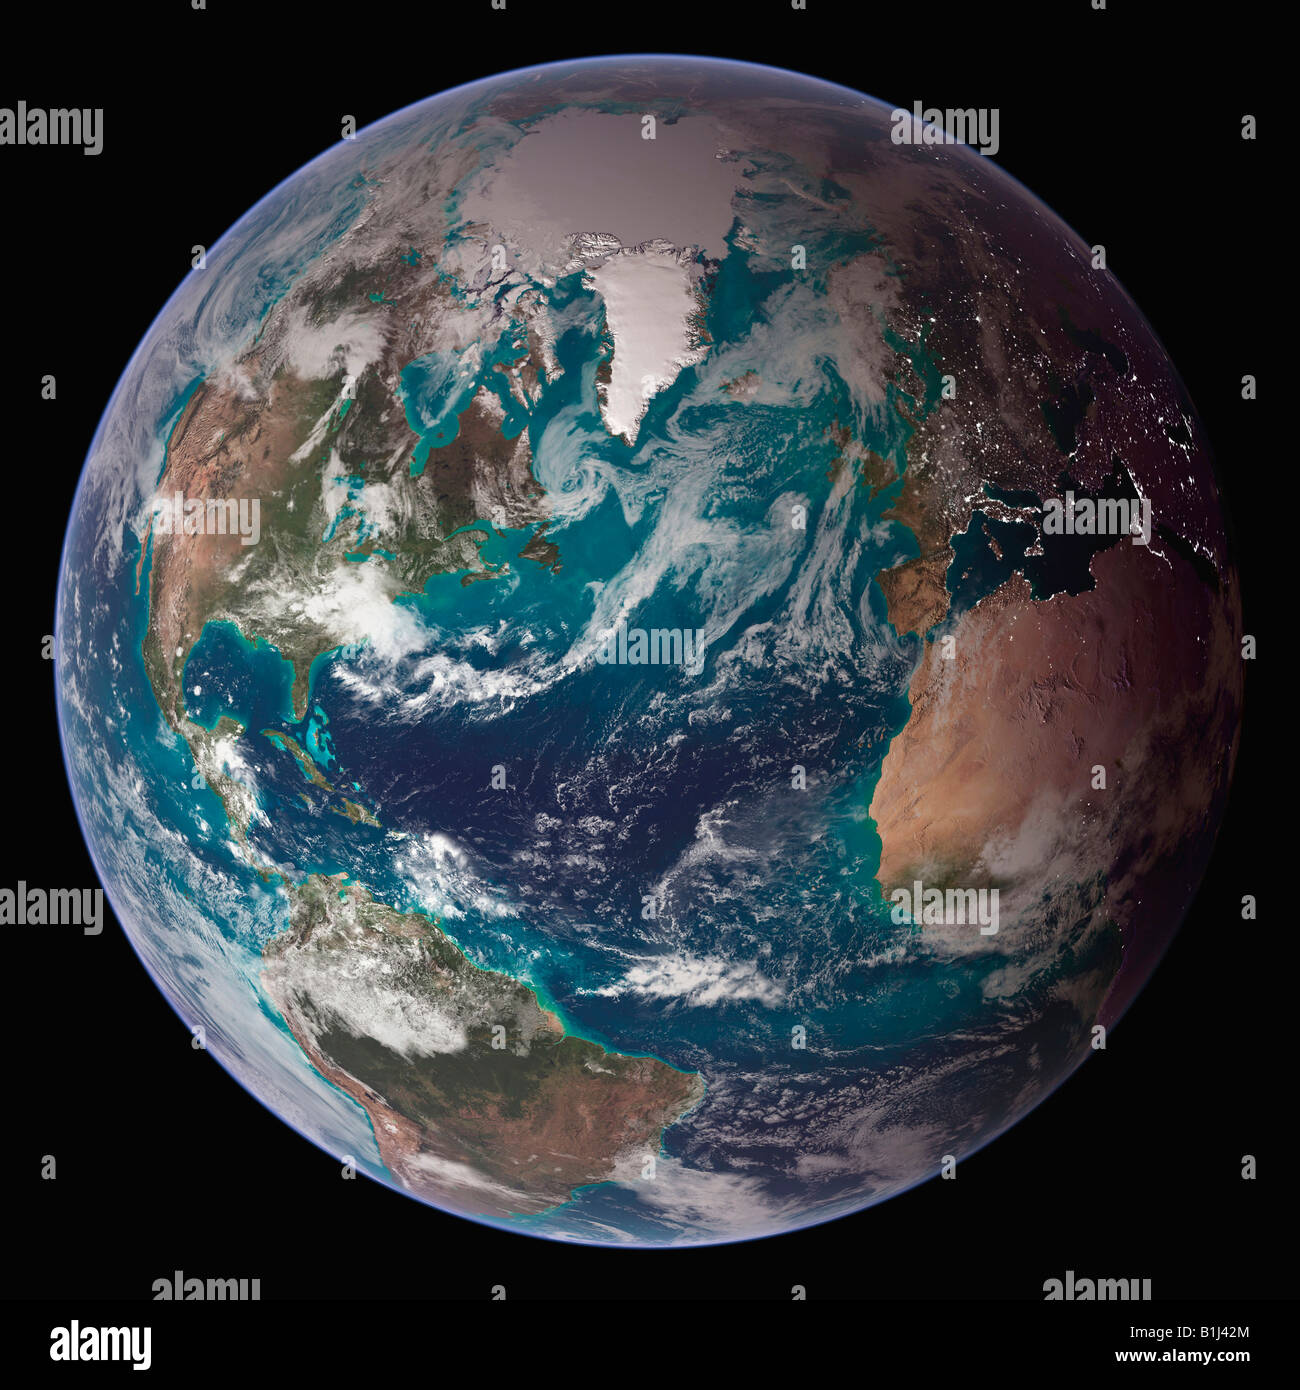 Satellite view of the earth showing the Western Hemisphere - Stock Image